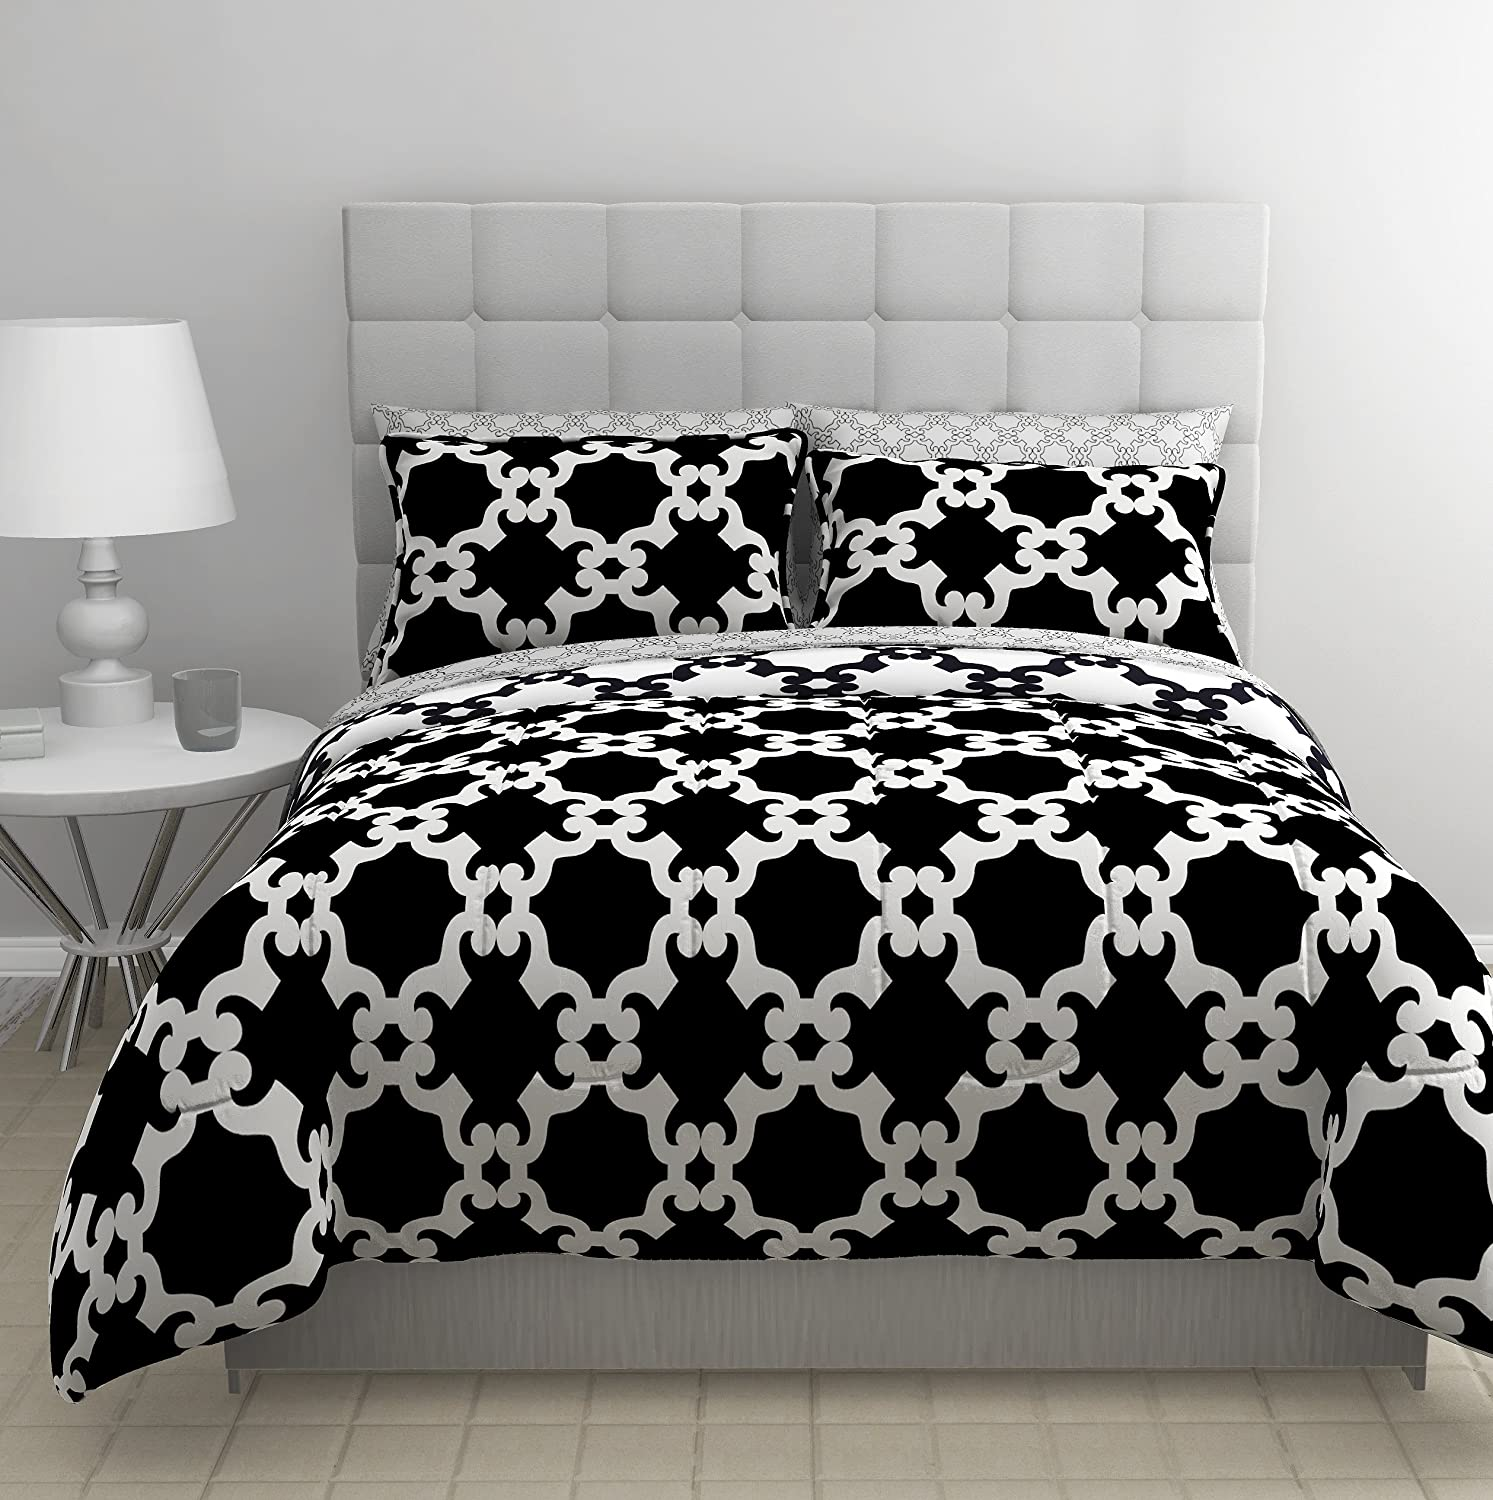 Bed-in-a-Bag Comforter Set, Queen, Black/White